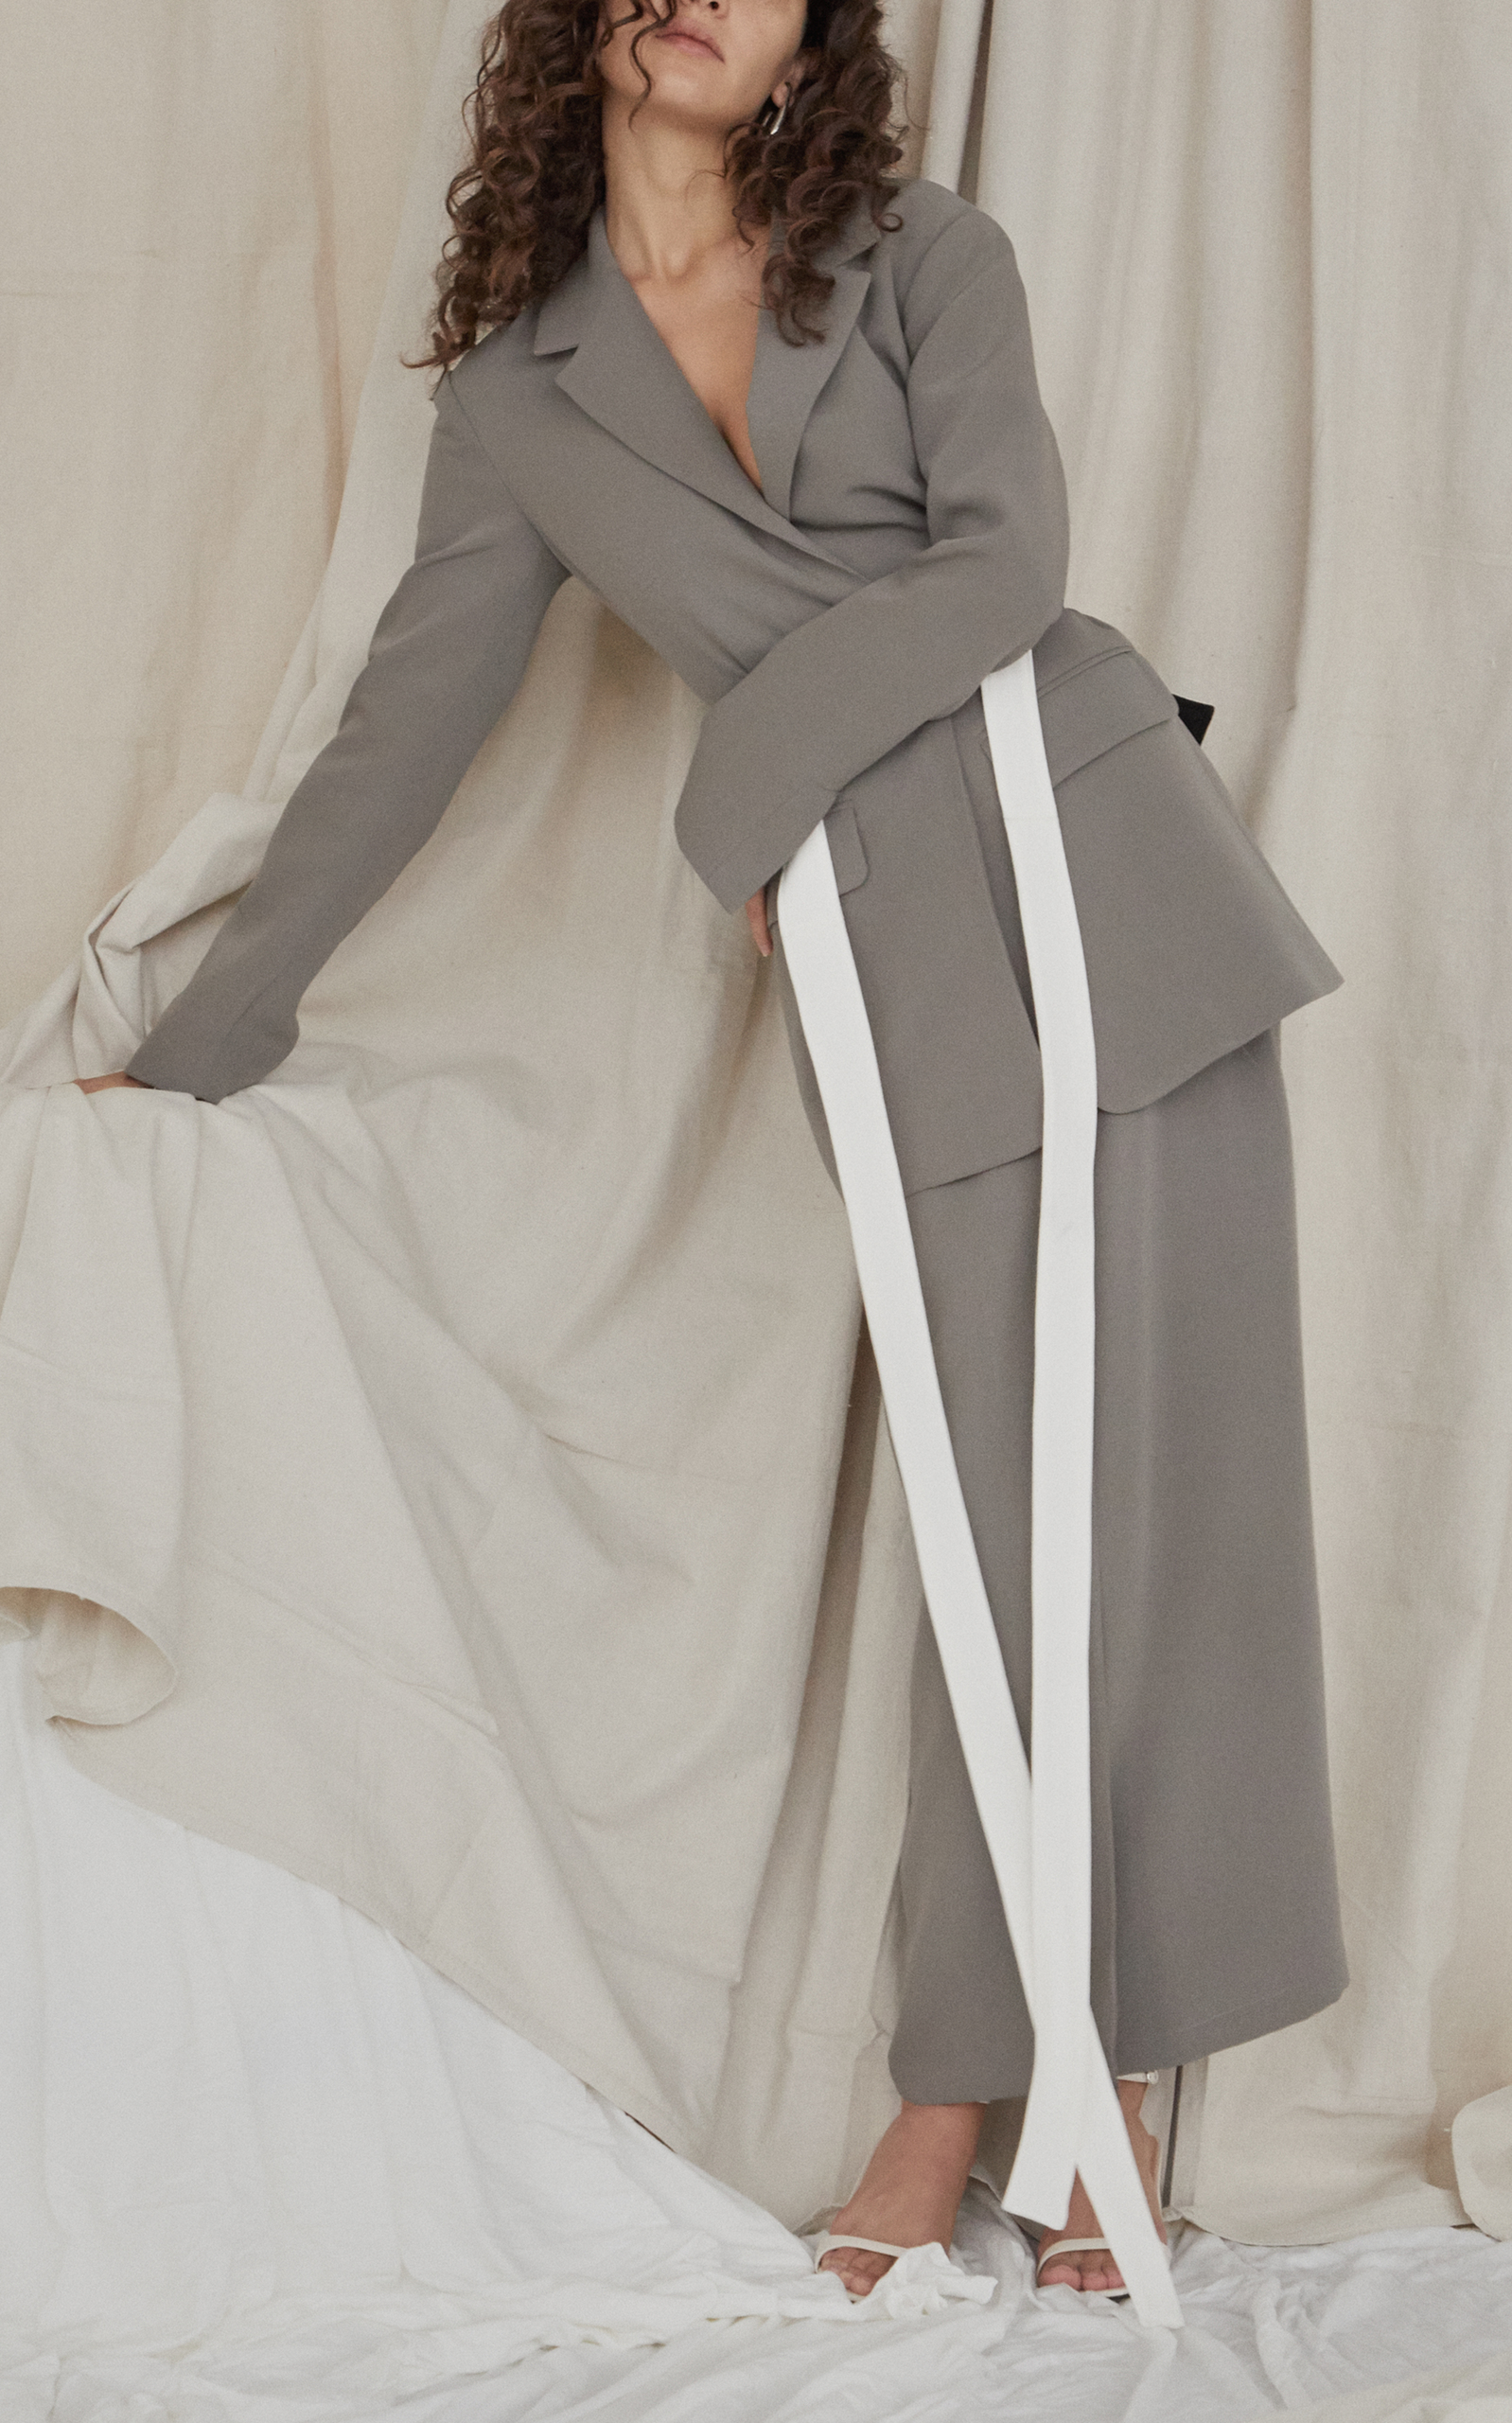 WENDELBORN Oversized Tailored Jacket With Belt in Grey